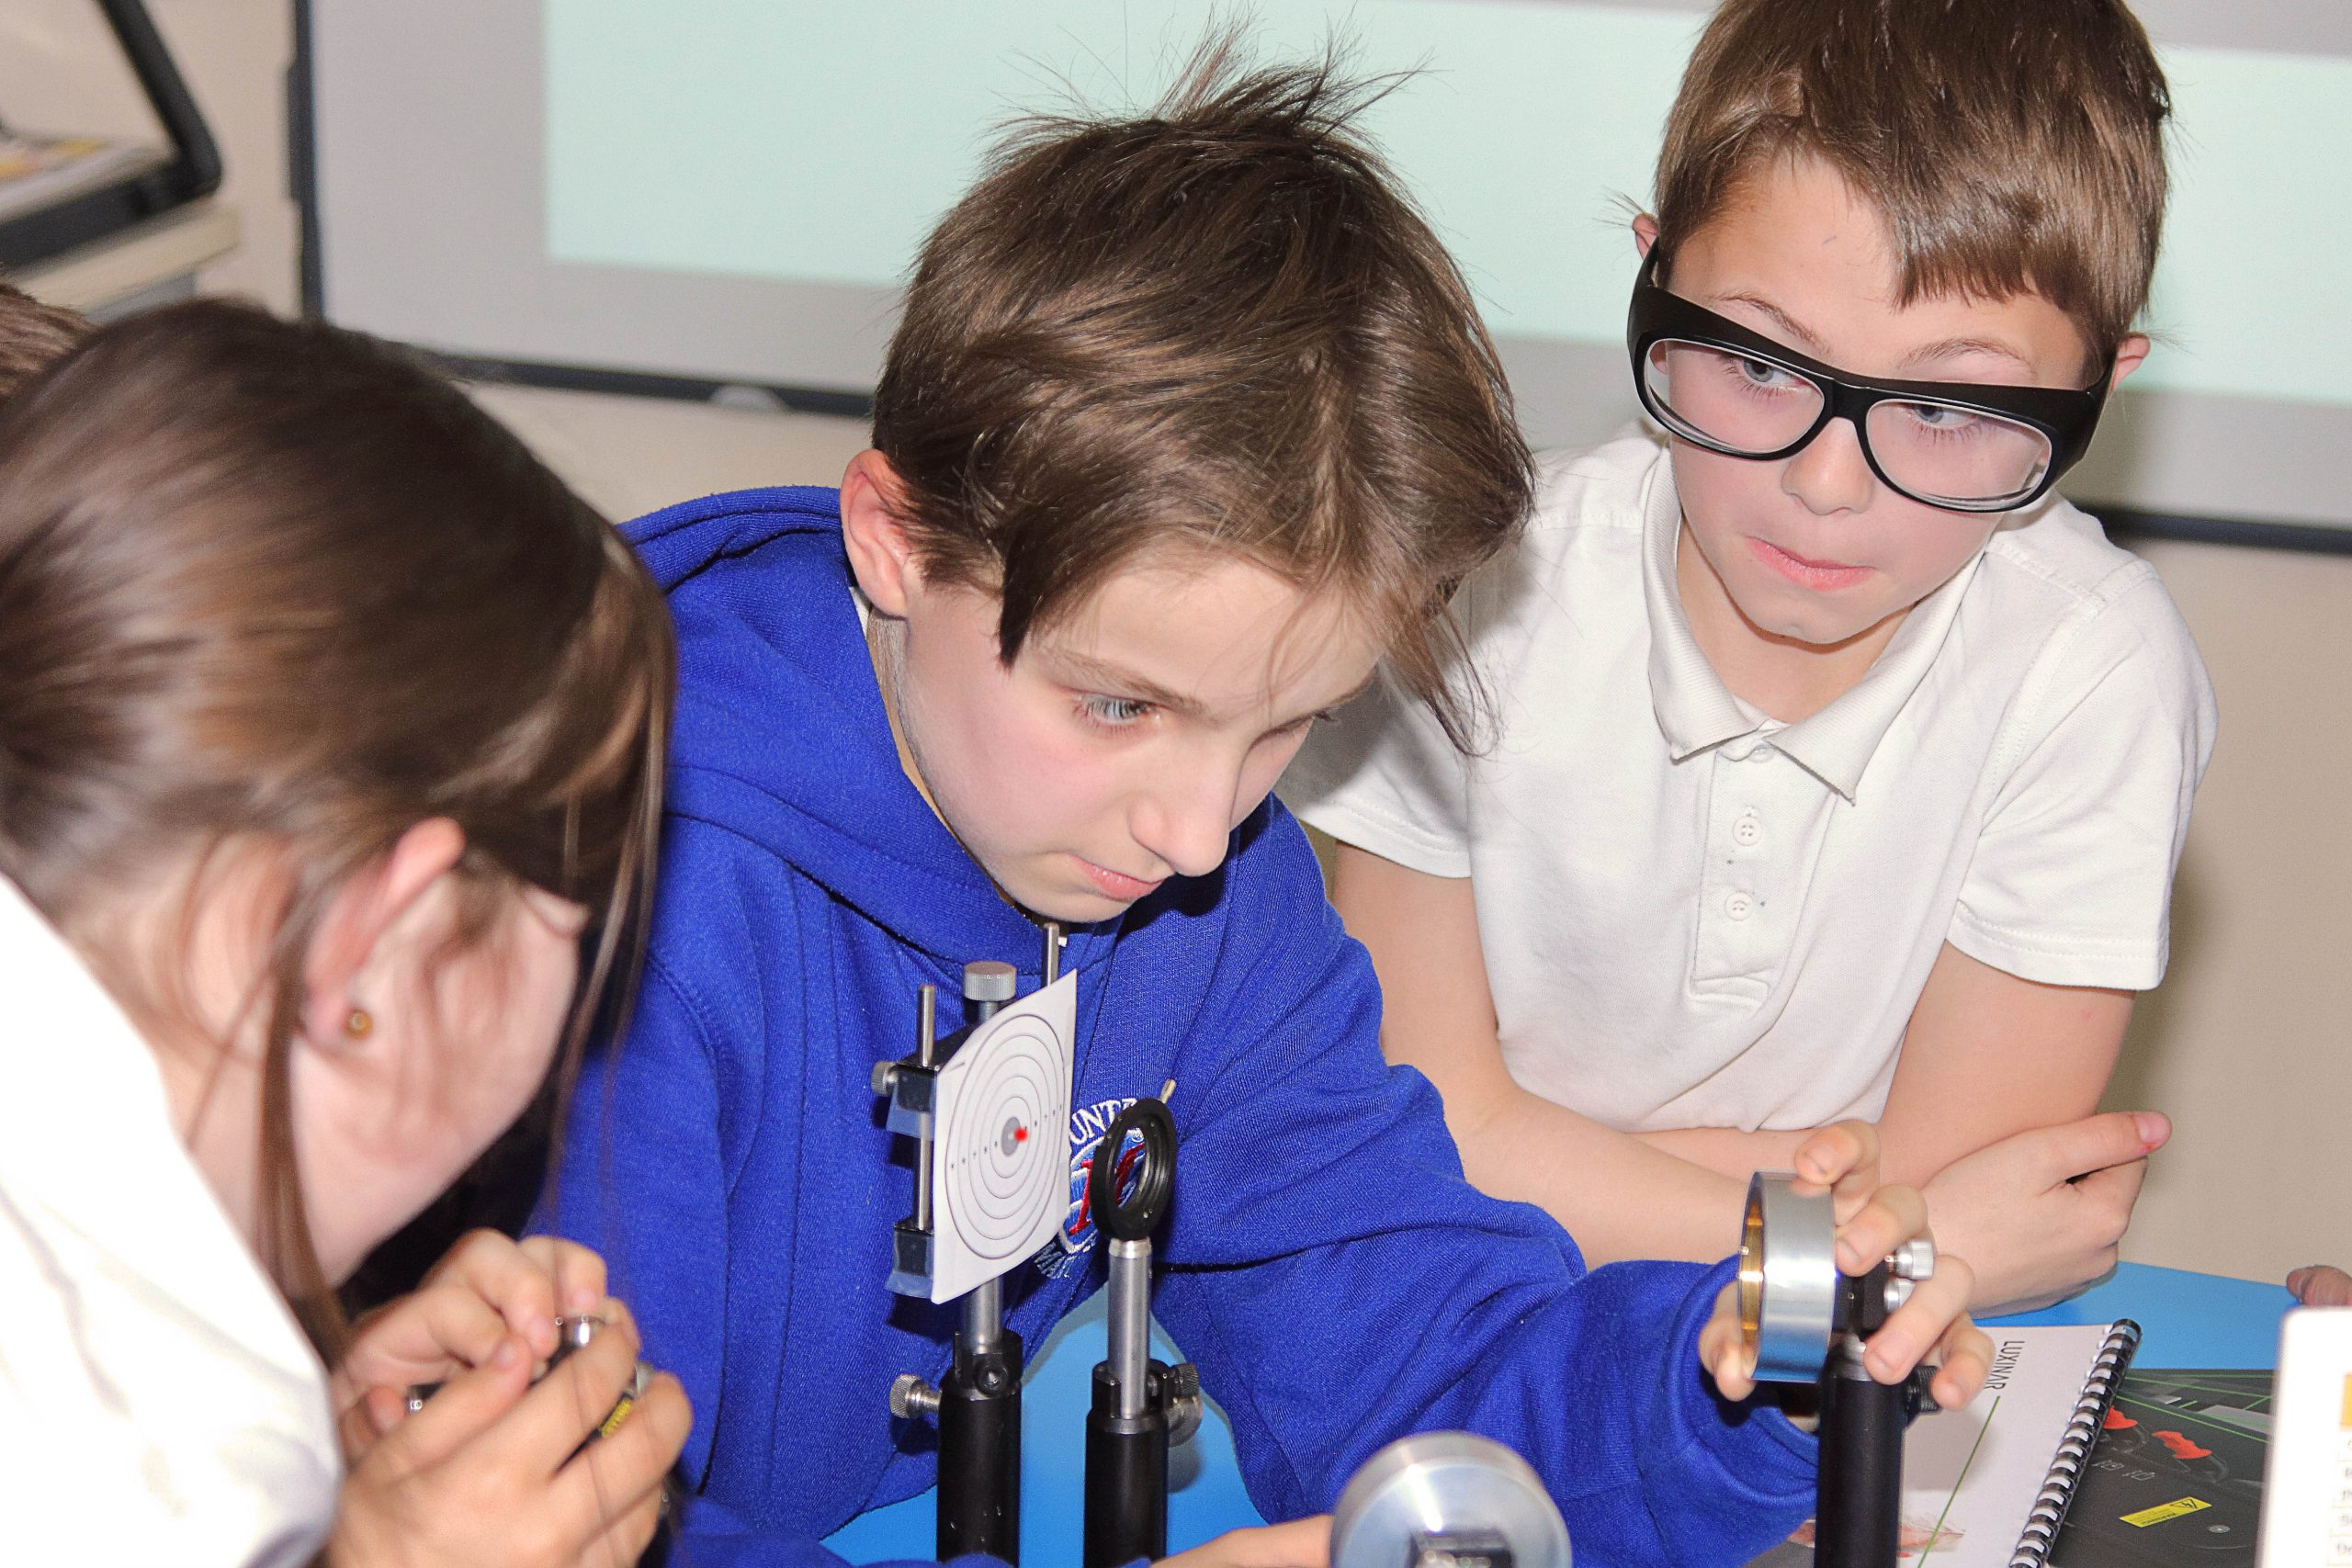 Children at Mountbatten Primary School, Hull, UK, get hands-on with a laser-based game